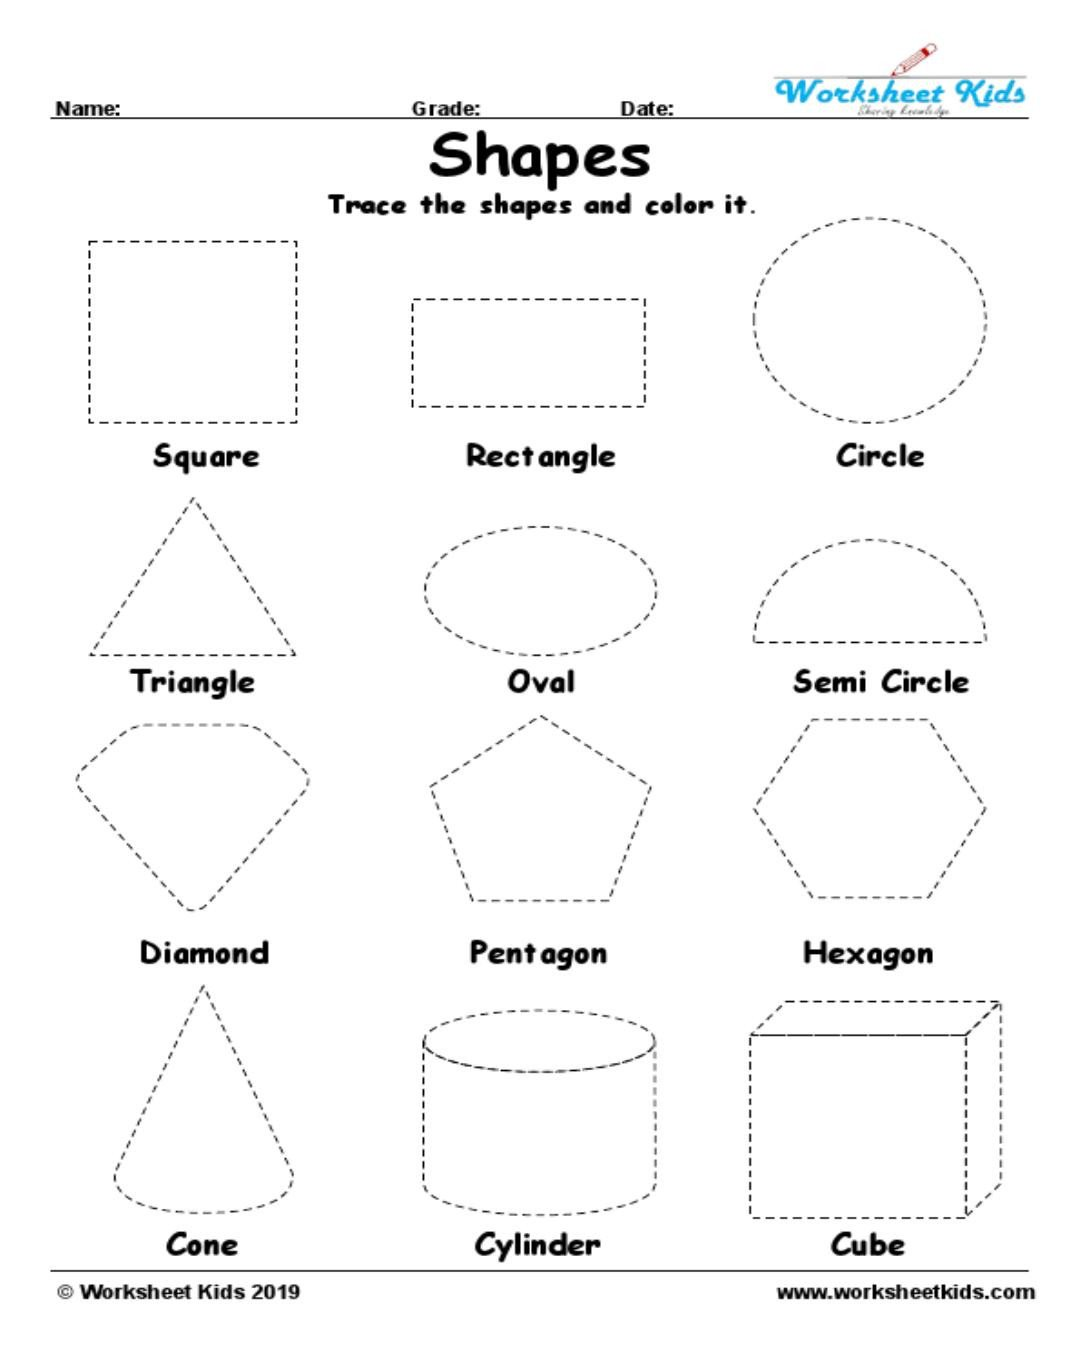 Two Dimensional Shapes Worksheet Tracing Shapes Worksheet In Geometry Worksheets Kids